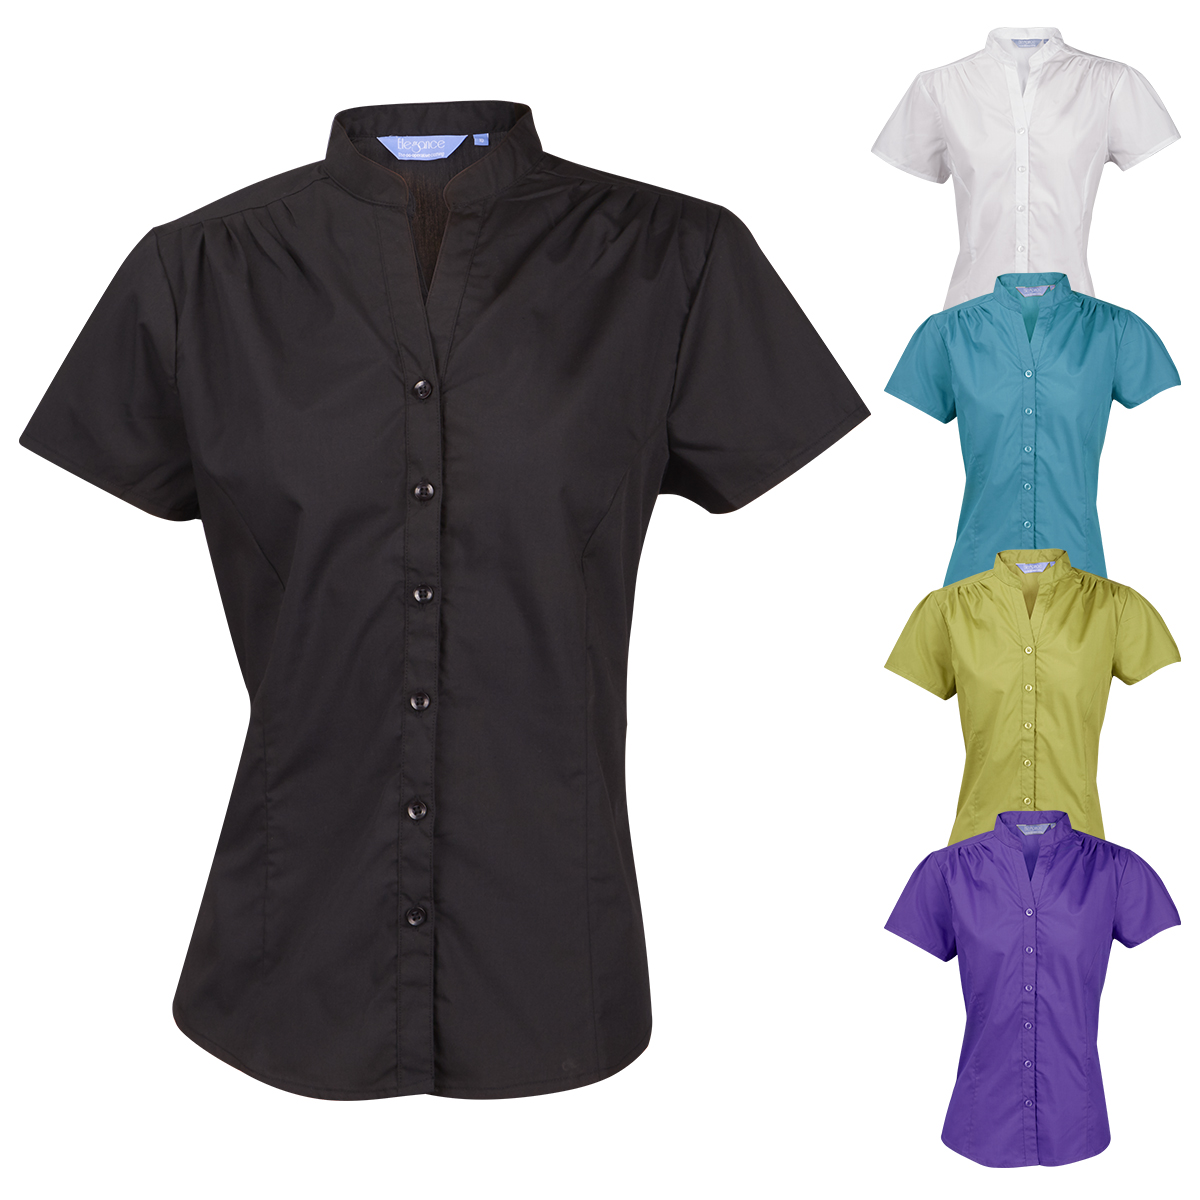 51c44a2af3f Ladies Womens Blouse Shirt Top Short Sleeve Work Office Formal Mandarin  Collar